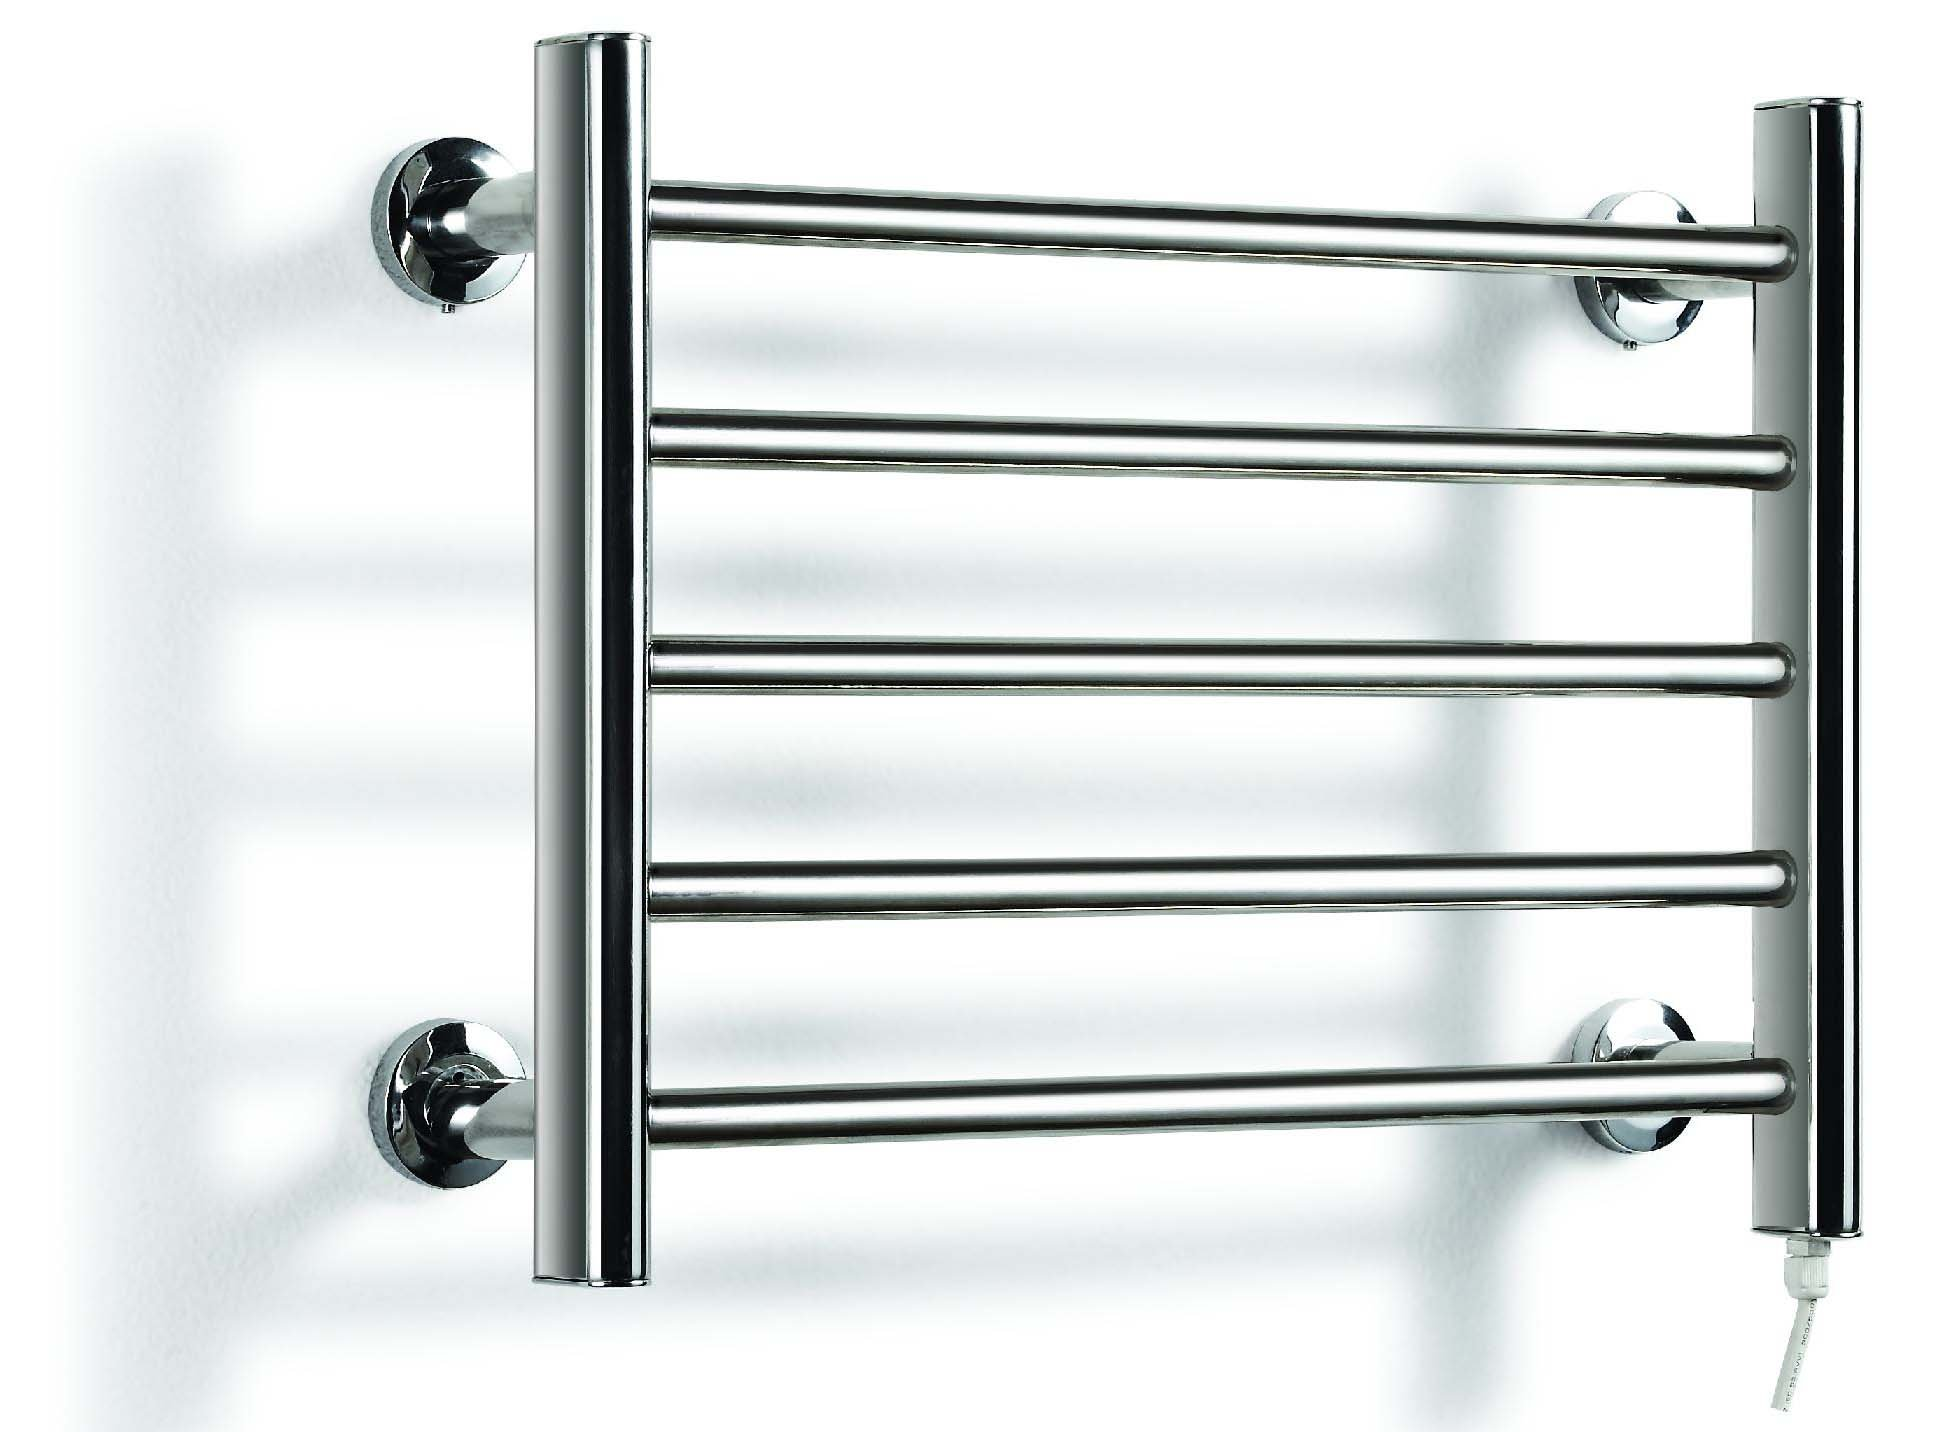 Amba Towel Warmer | Amba Towel Warmers | Towel Dryers Bathroom